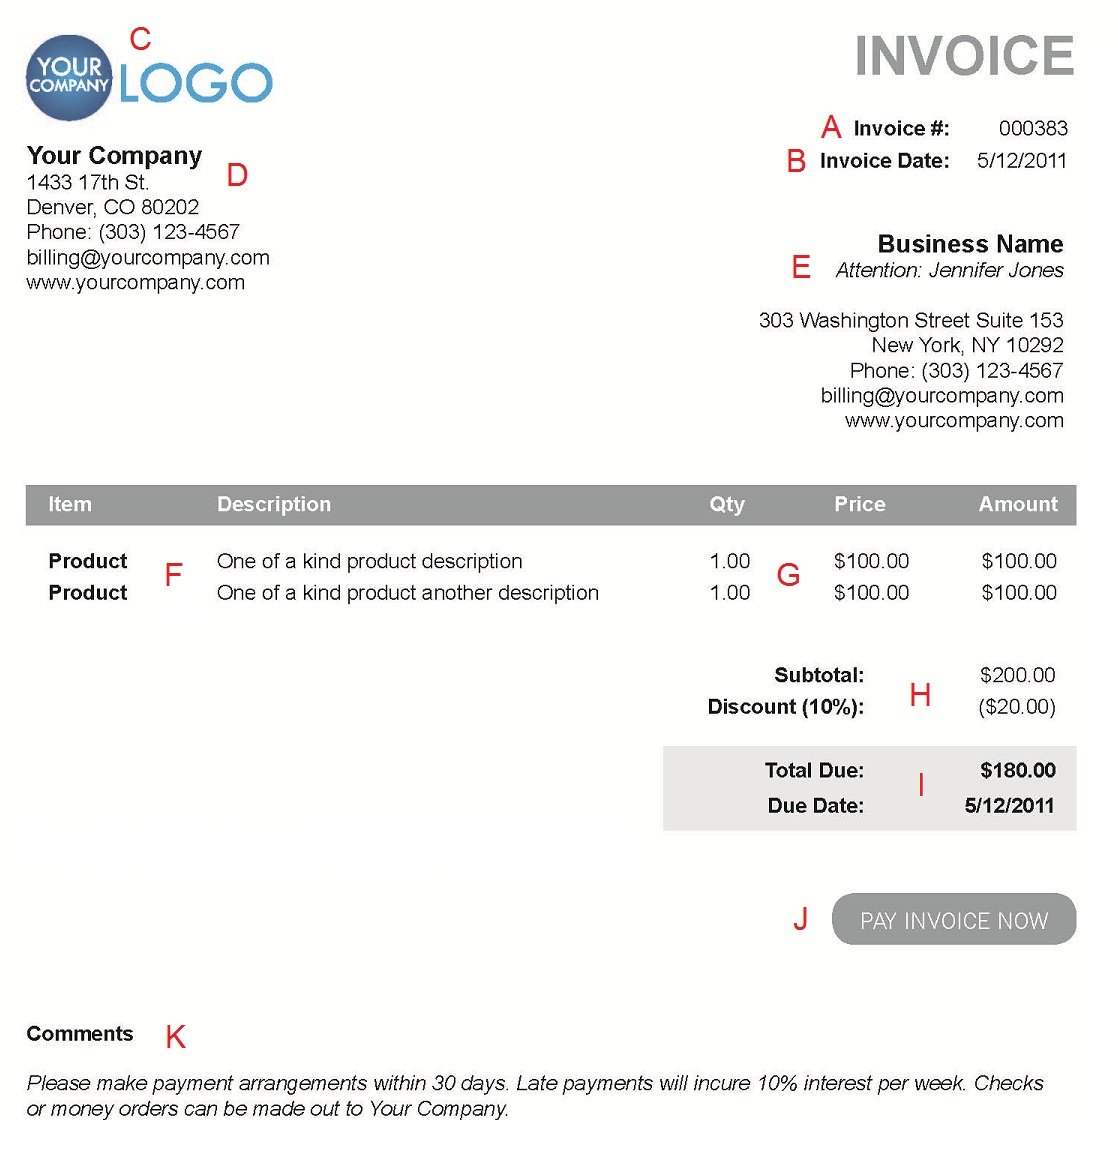 Imagerackus  Sweet The  Different Sections Of An Electronic Payment Invoice With Inspiring A  With Lovely What Is A Invoice On Ebay Also Whats A Proforma Invoice In Addition Invoice To Go Help And Consulting Invoice Template Word As Well As Construction Invoices Additionally How To Make A Commercial Invoice From Paysimplecom With Imagerackus  Inspiring The  Different Sections Of An Electronic Payment Invoice With Lovely A  And Sweet What Is A Invoice On Ebay Also Whats A Proforma Invoice In Addition Invoice To Go Help From Paysimplecom